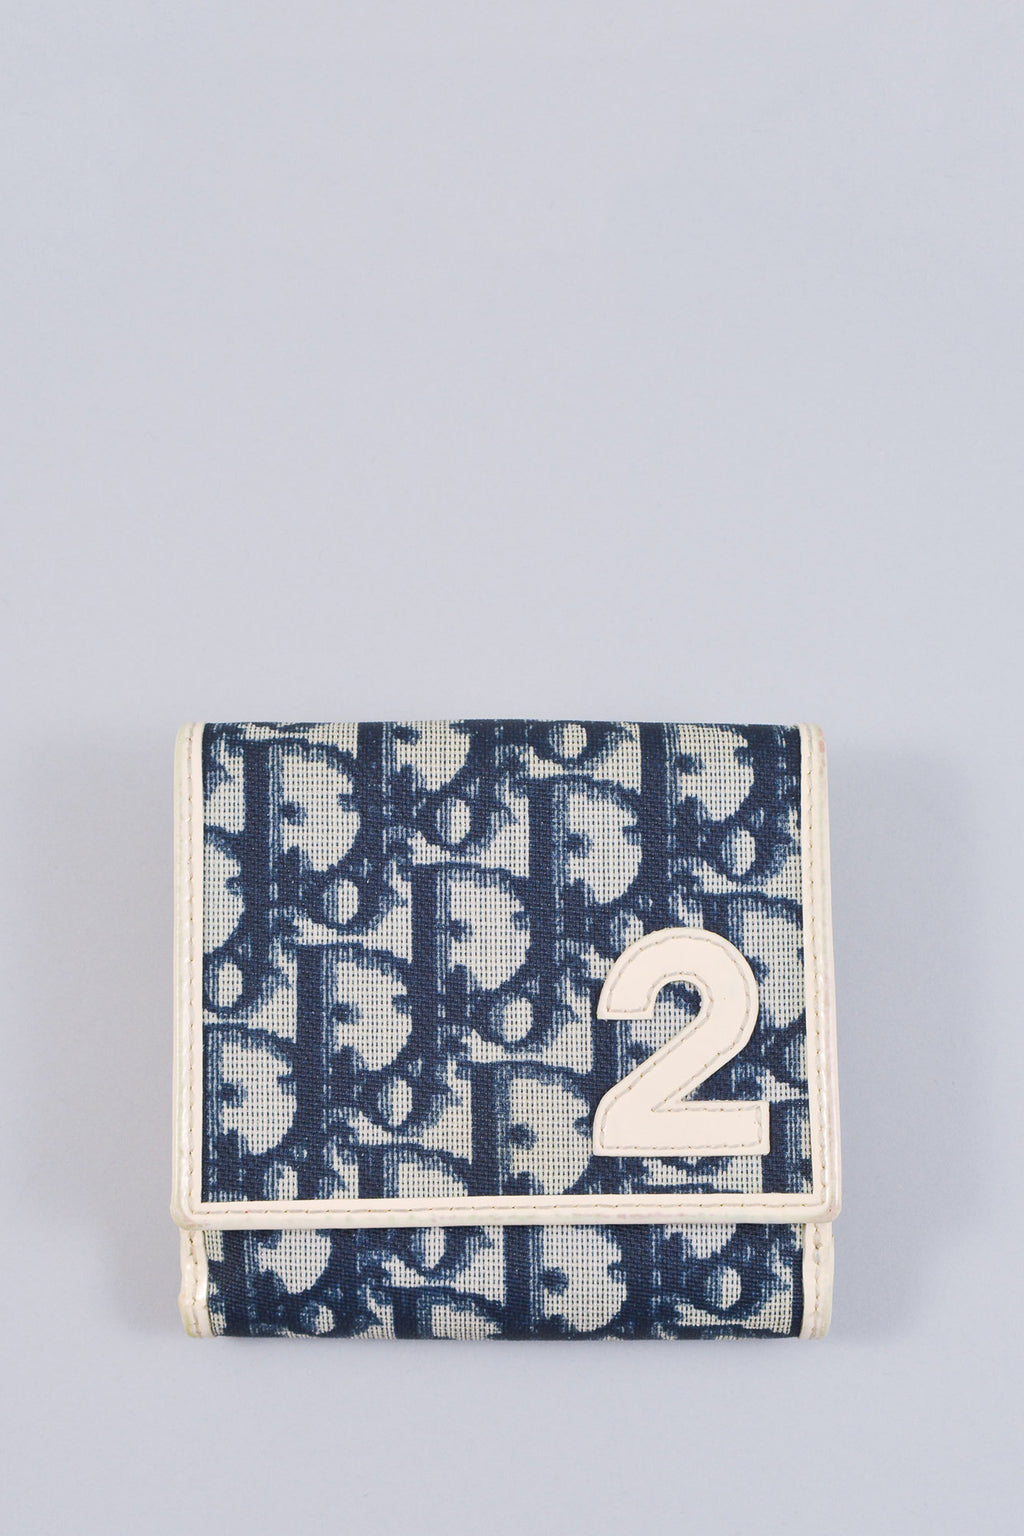 Dior Blue and White Diorissimo Wallet